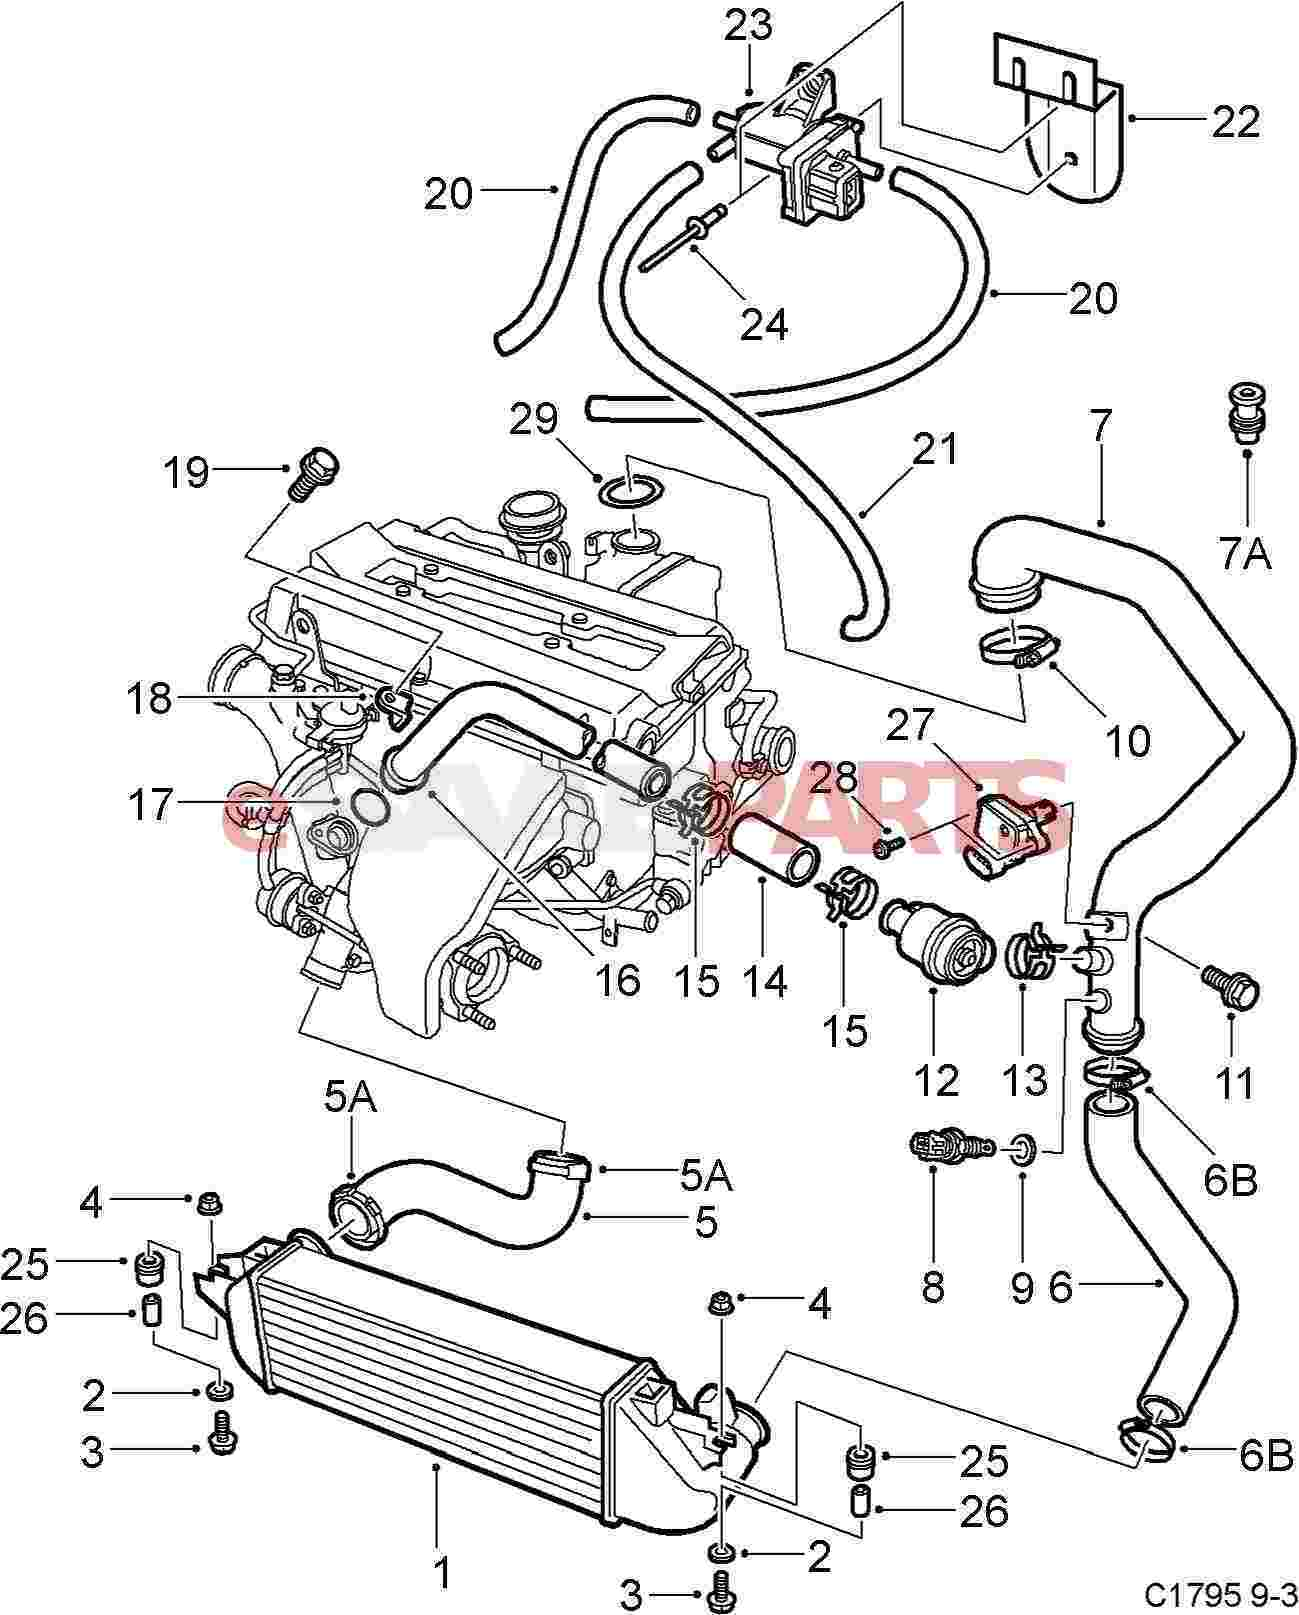 hight resolution of 1999 saab engine diagram wiring diagrams schema rh 37 verena hoegerl de saab 9 5 engine schematic saab 2 0 engine